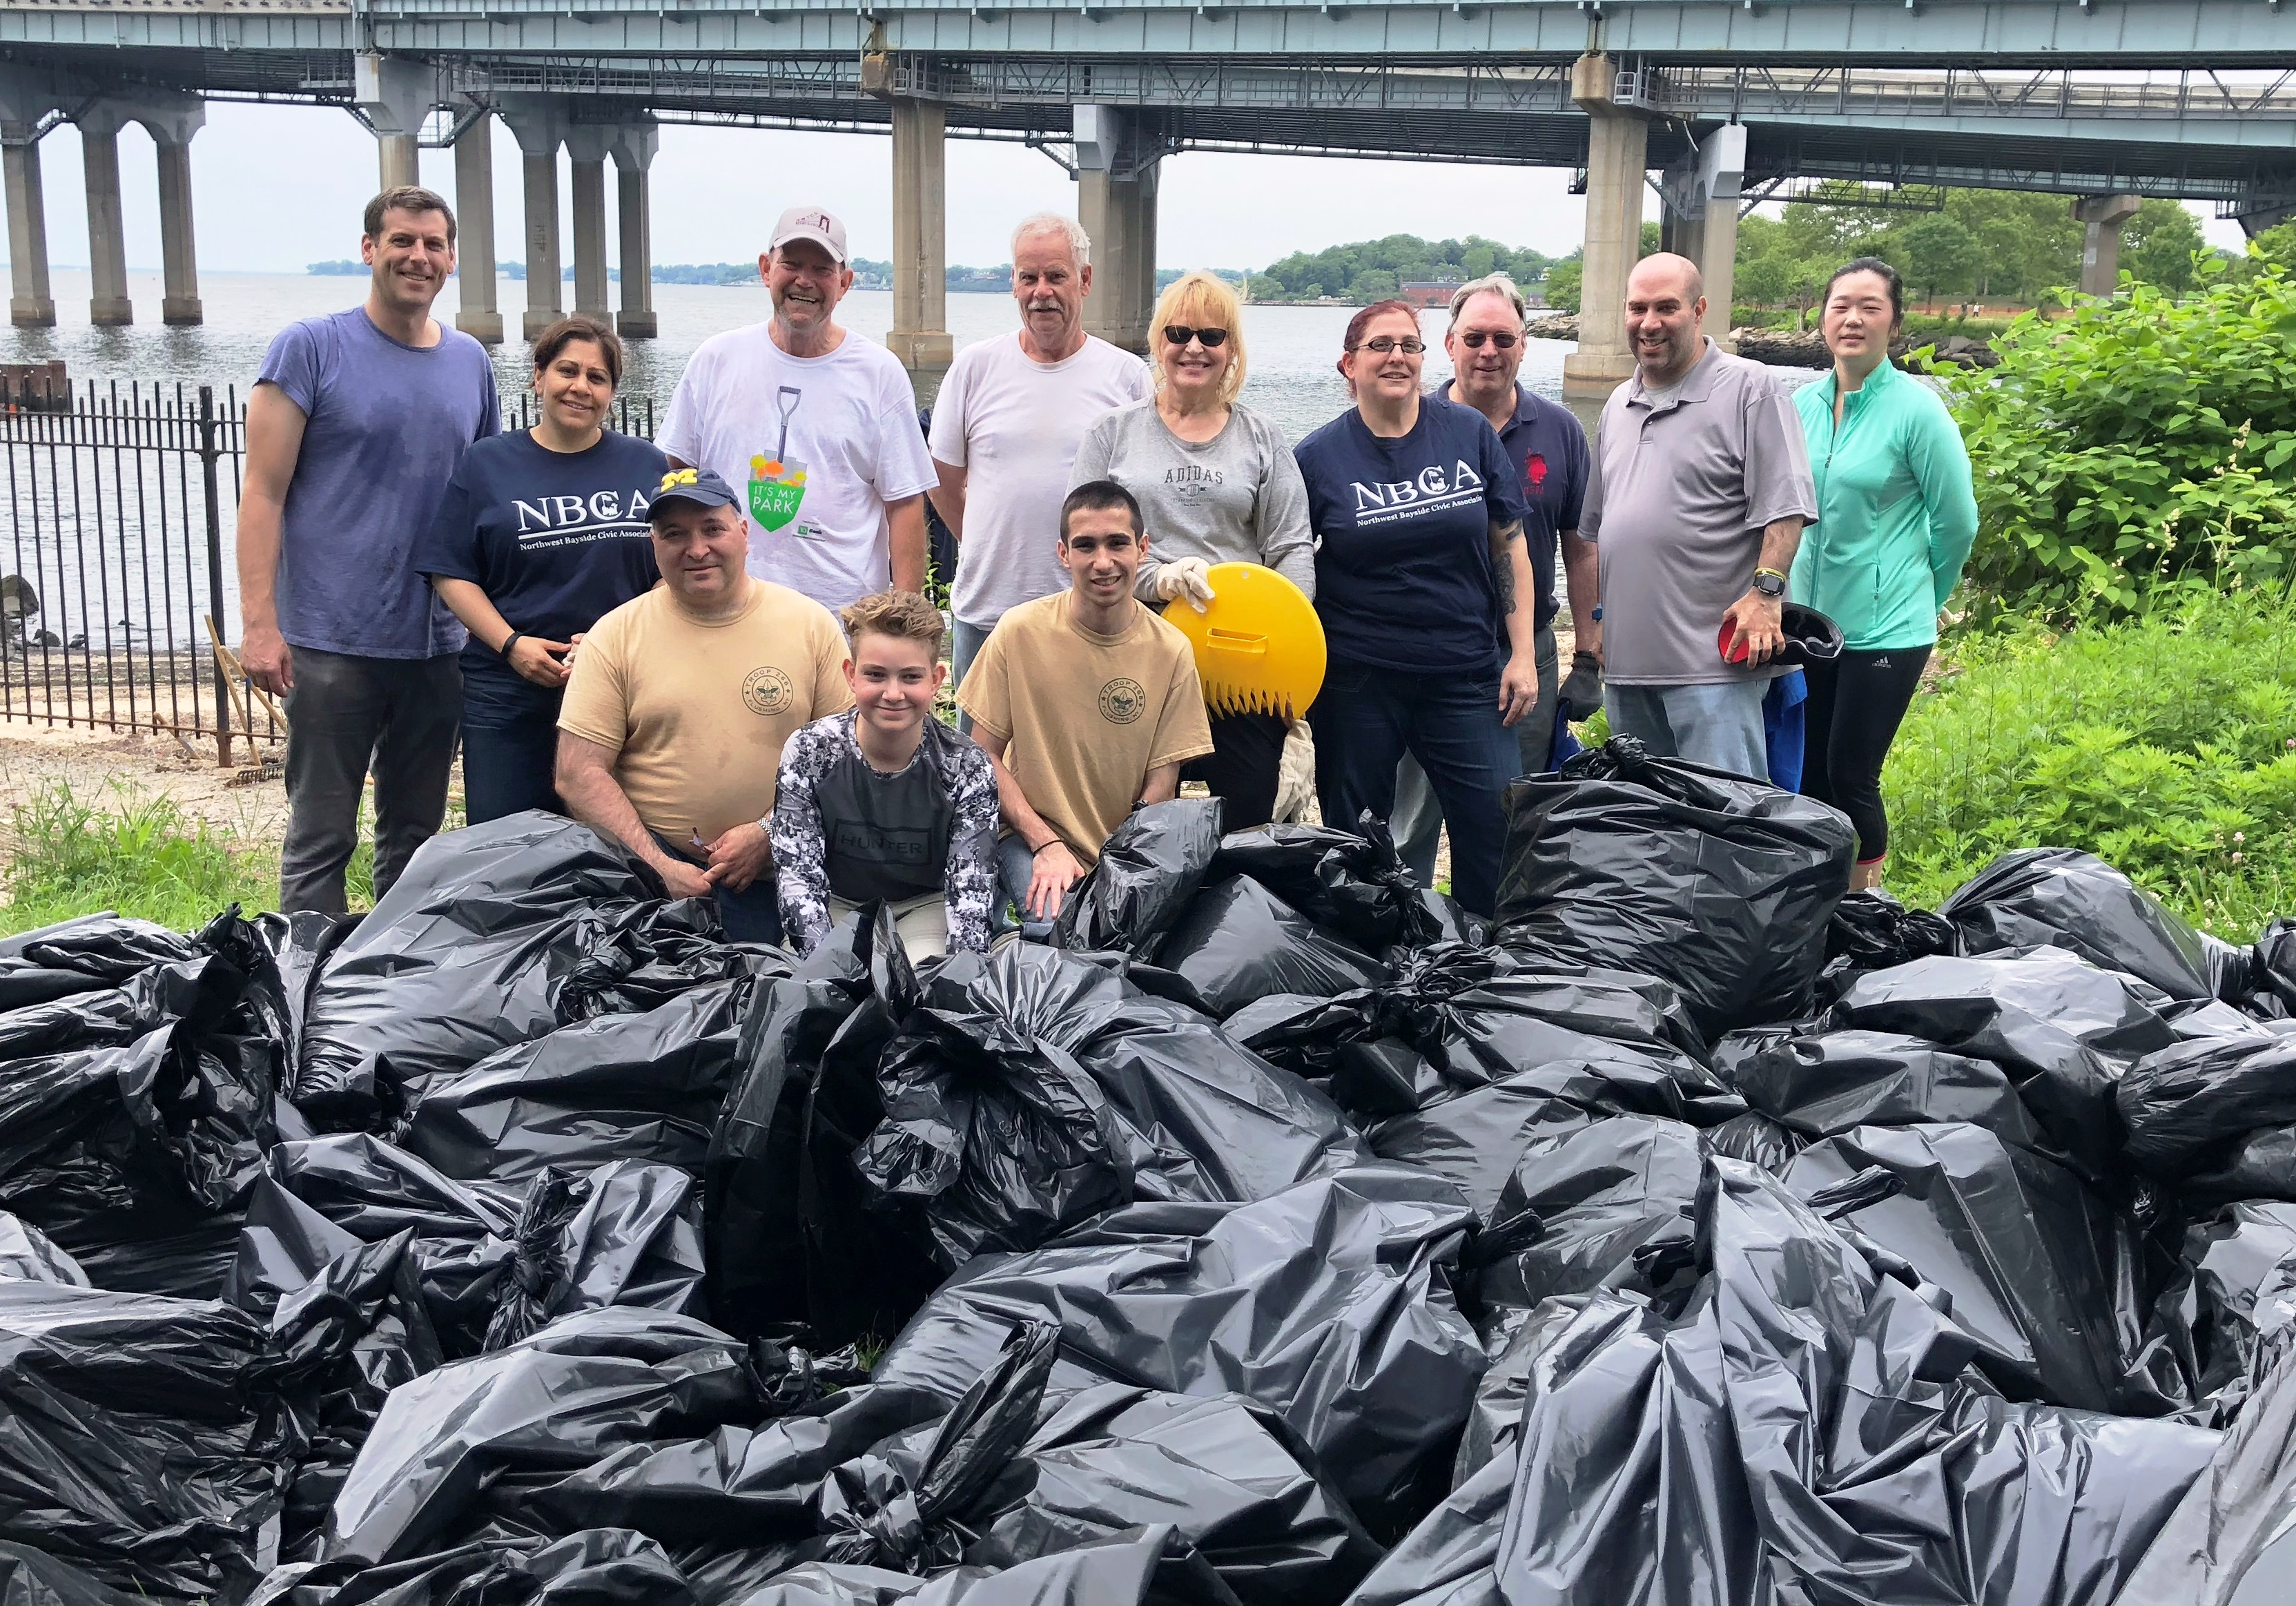 On June 10, 2018, Assemblyman Braunstein held a Little Bay Park Beach Cleanup with assistance from Boy Scout Troop 268, Greater Whitestone Taxpayers Civic Association, and the Northwest Bayside Civic Association. The cleanup removed over 100 bags of garbage from Little Bay Park.<br />&nbsp;